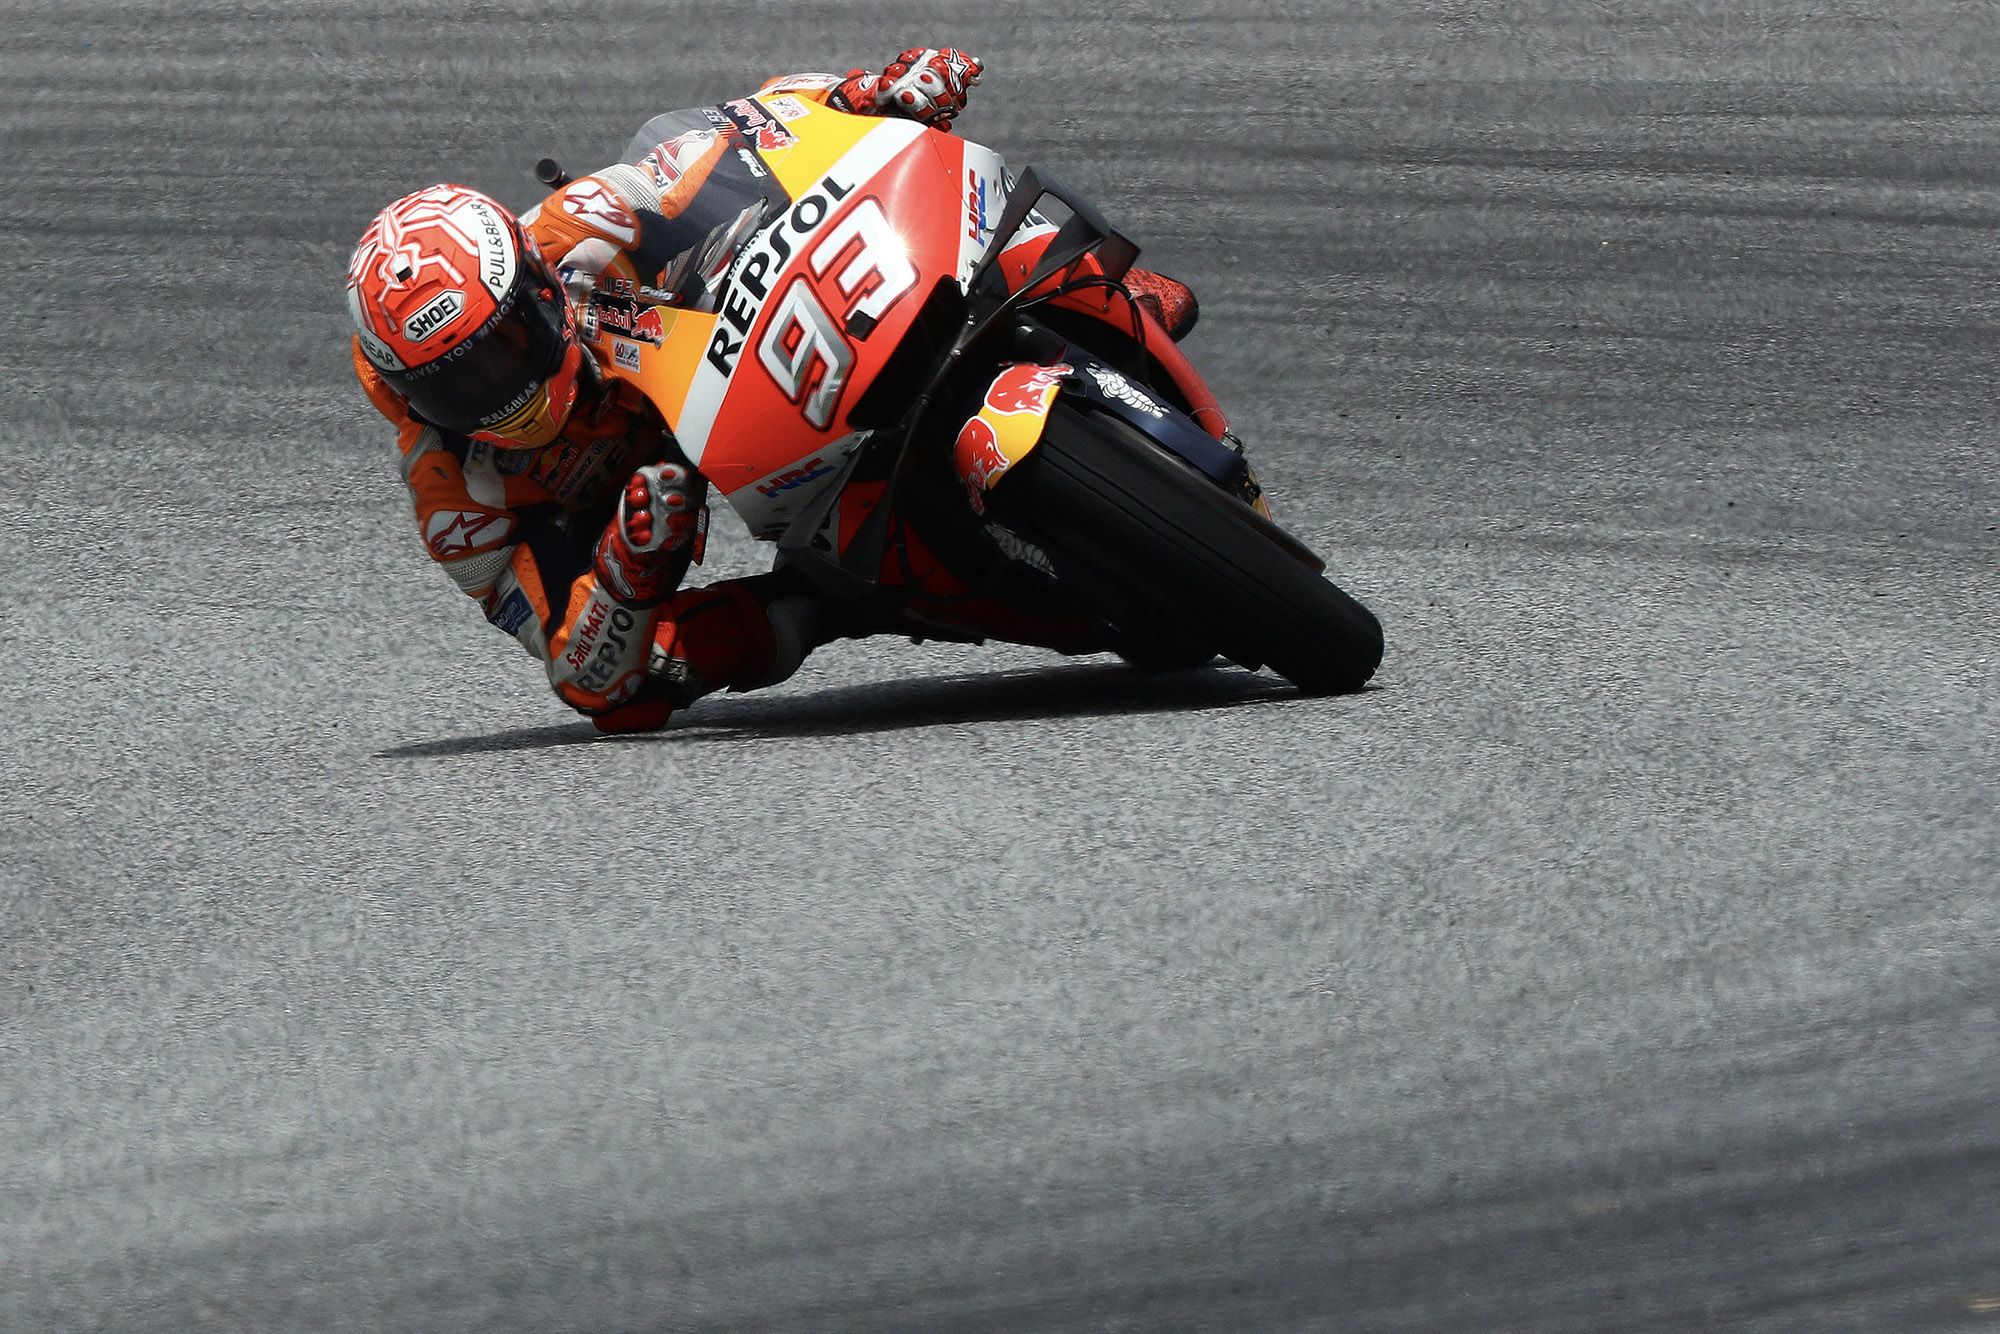 Marc Marquez cornering at the 2019 MotoGP Thailand Grand Prix